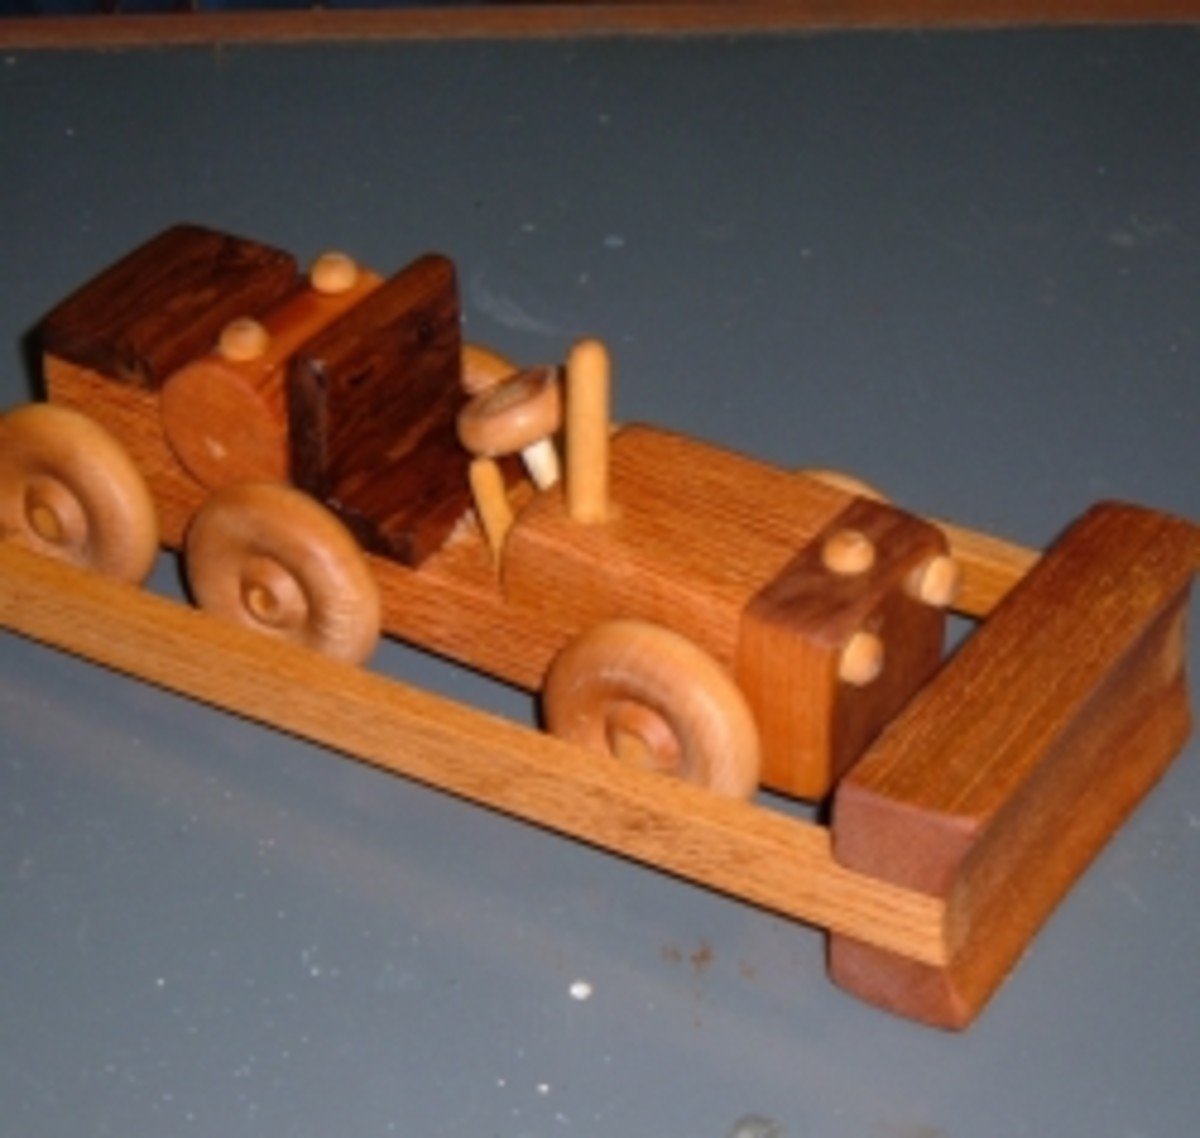 Making Handcrafted Wooden Toys: The Bulldozer